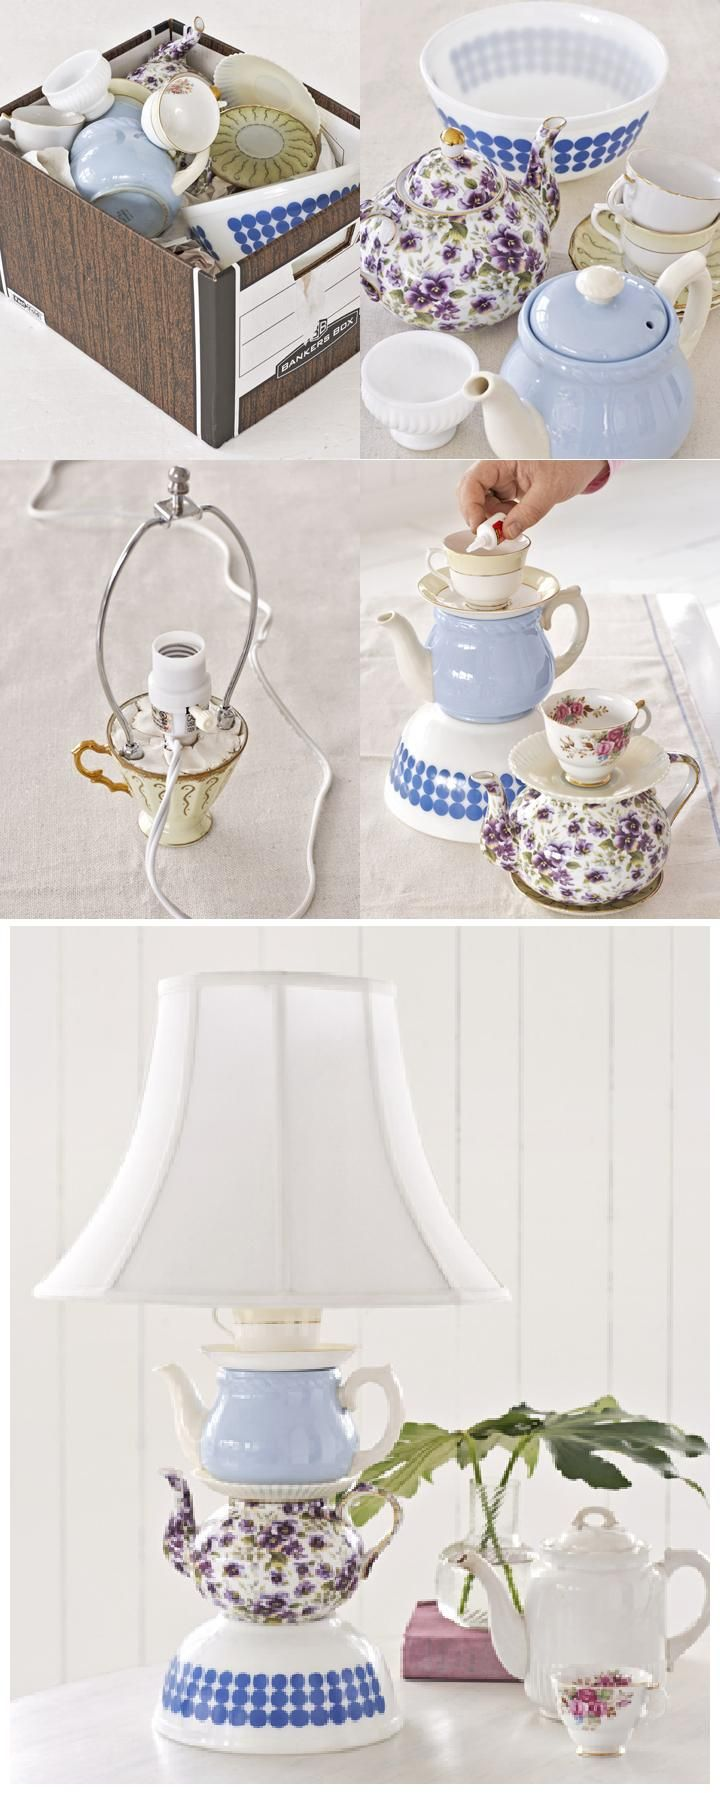 projects idea unique tea cups. A New Use for Mismatched China  Teapot LampTea Cup Upcycle Teacup and